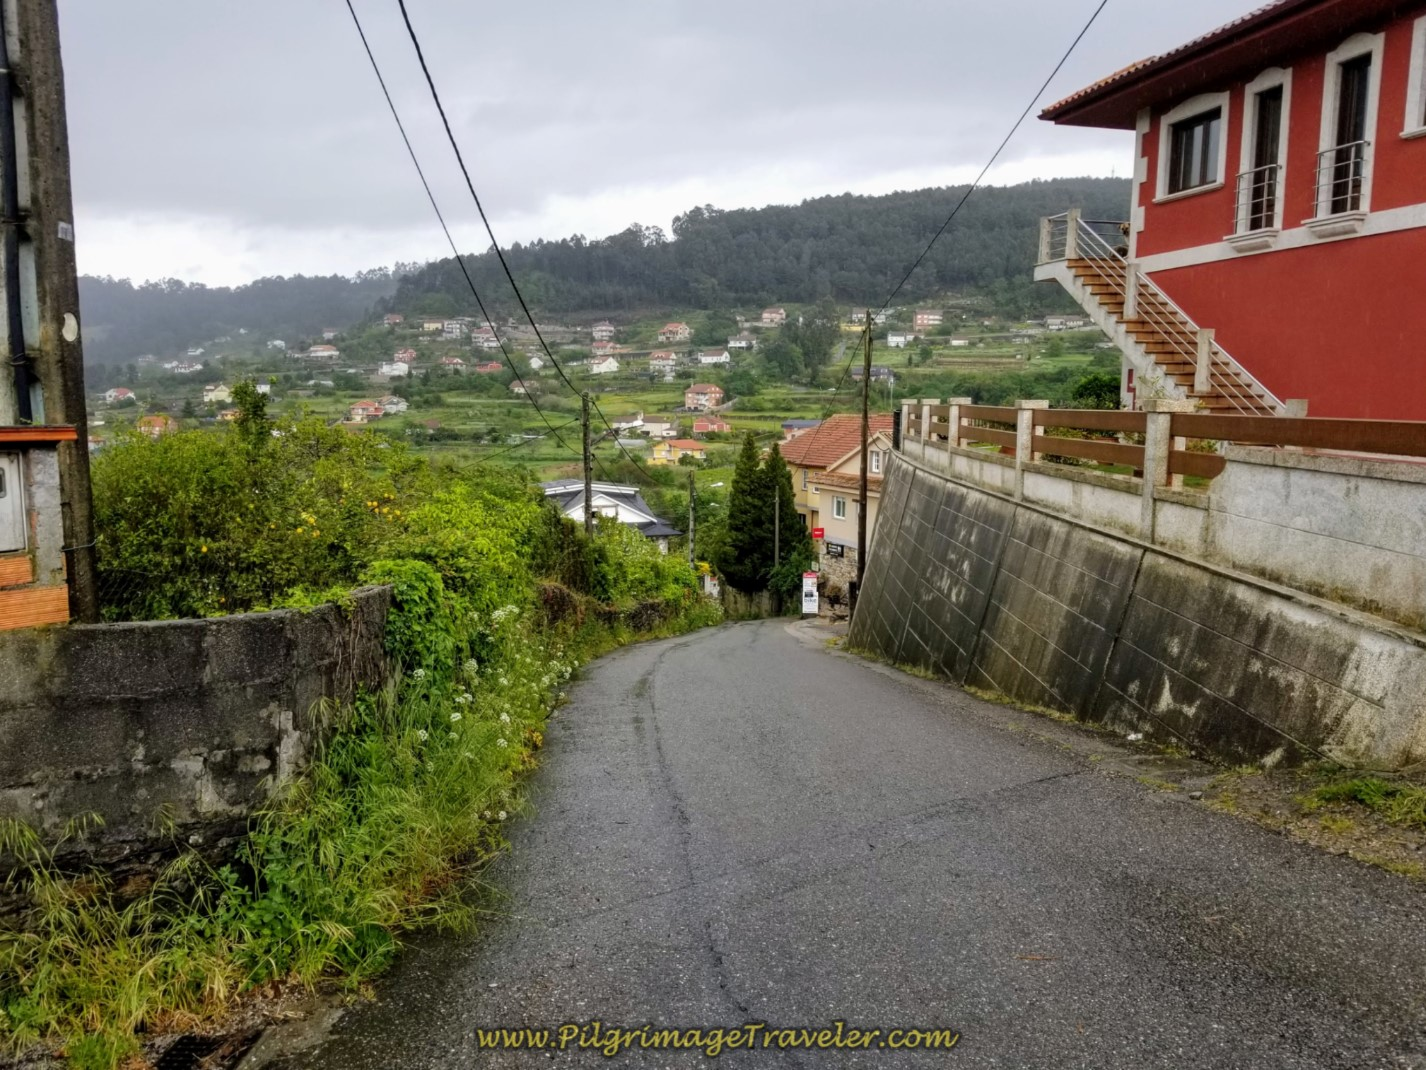 Descending into Padrón on day twenty-one of the central route of the Portuguese Camino